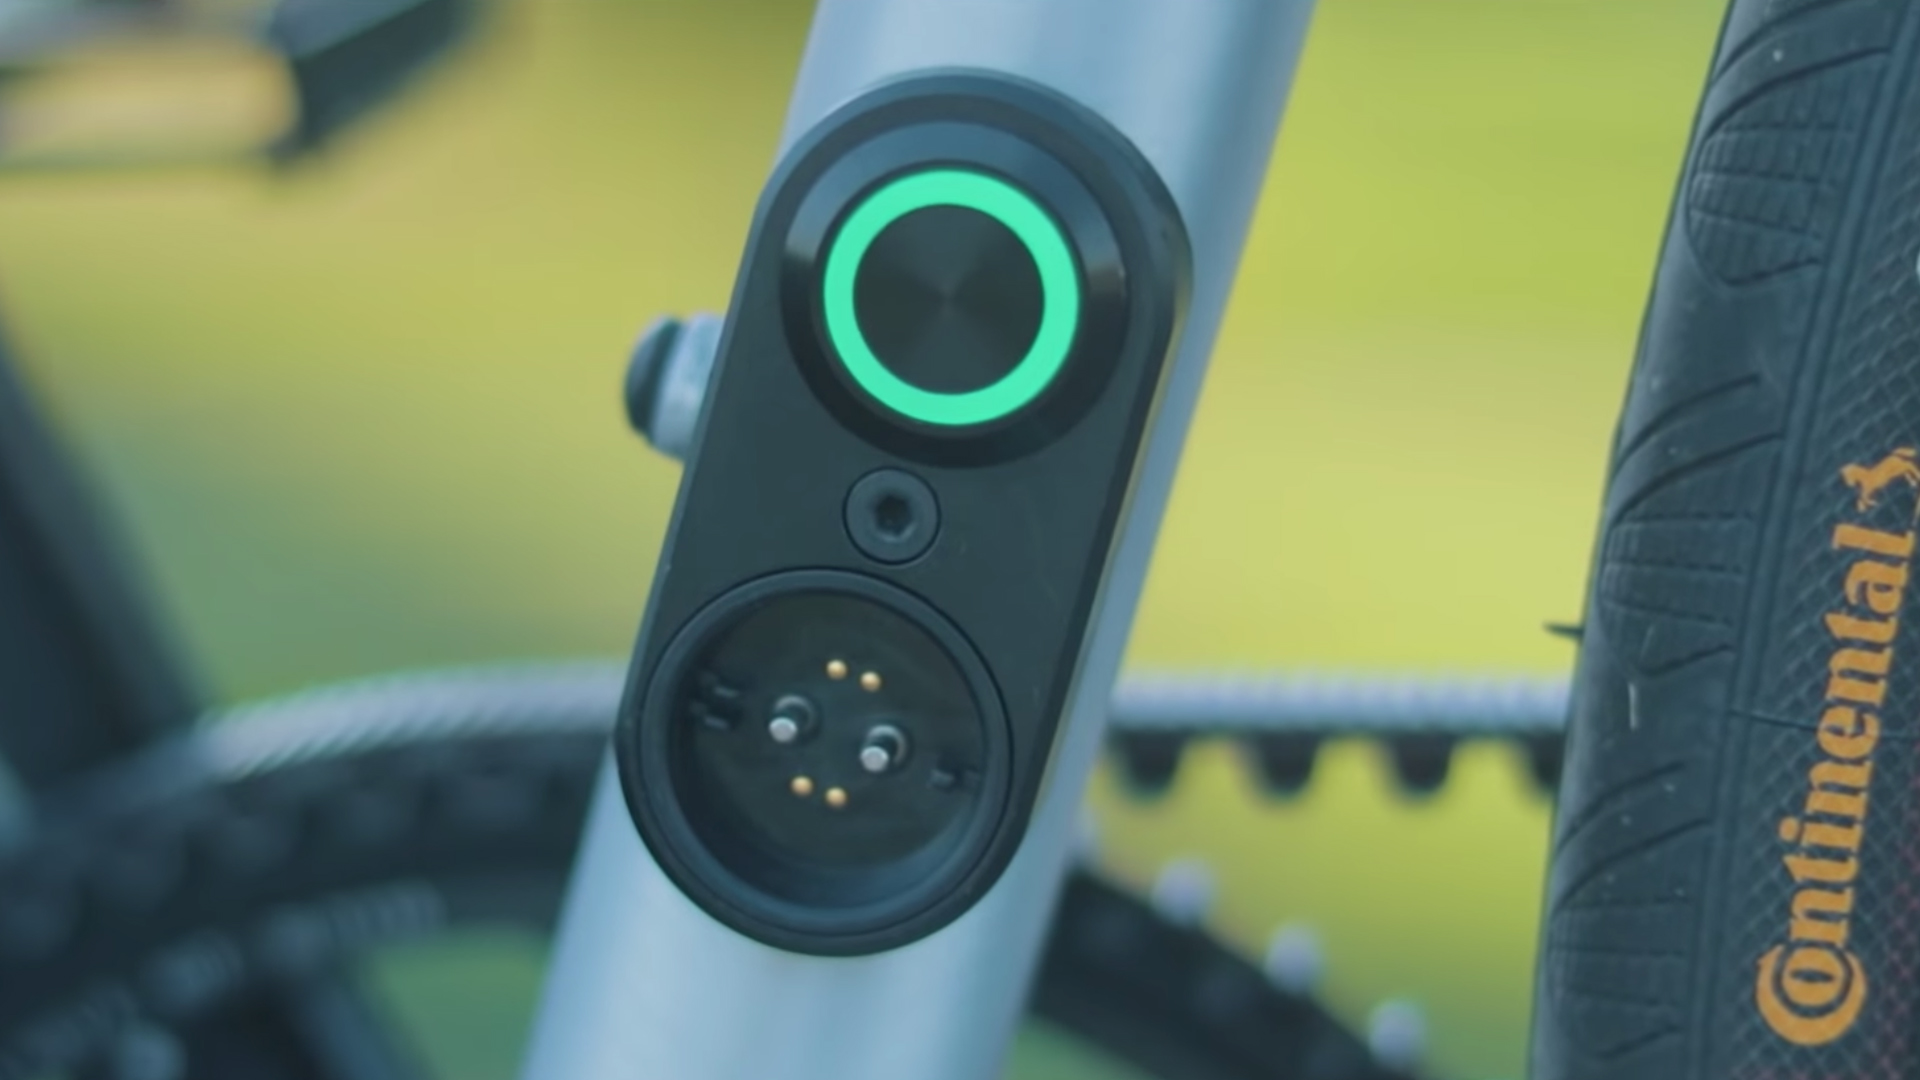 electrified-reviews-ampler-curt-single-speed-electric-bike-review-charging-port.jpg